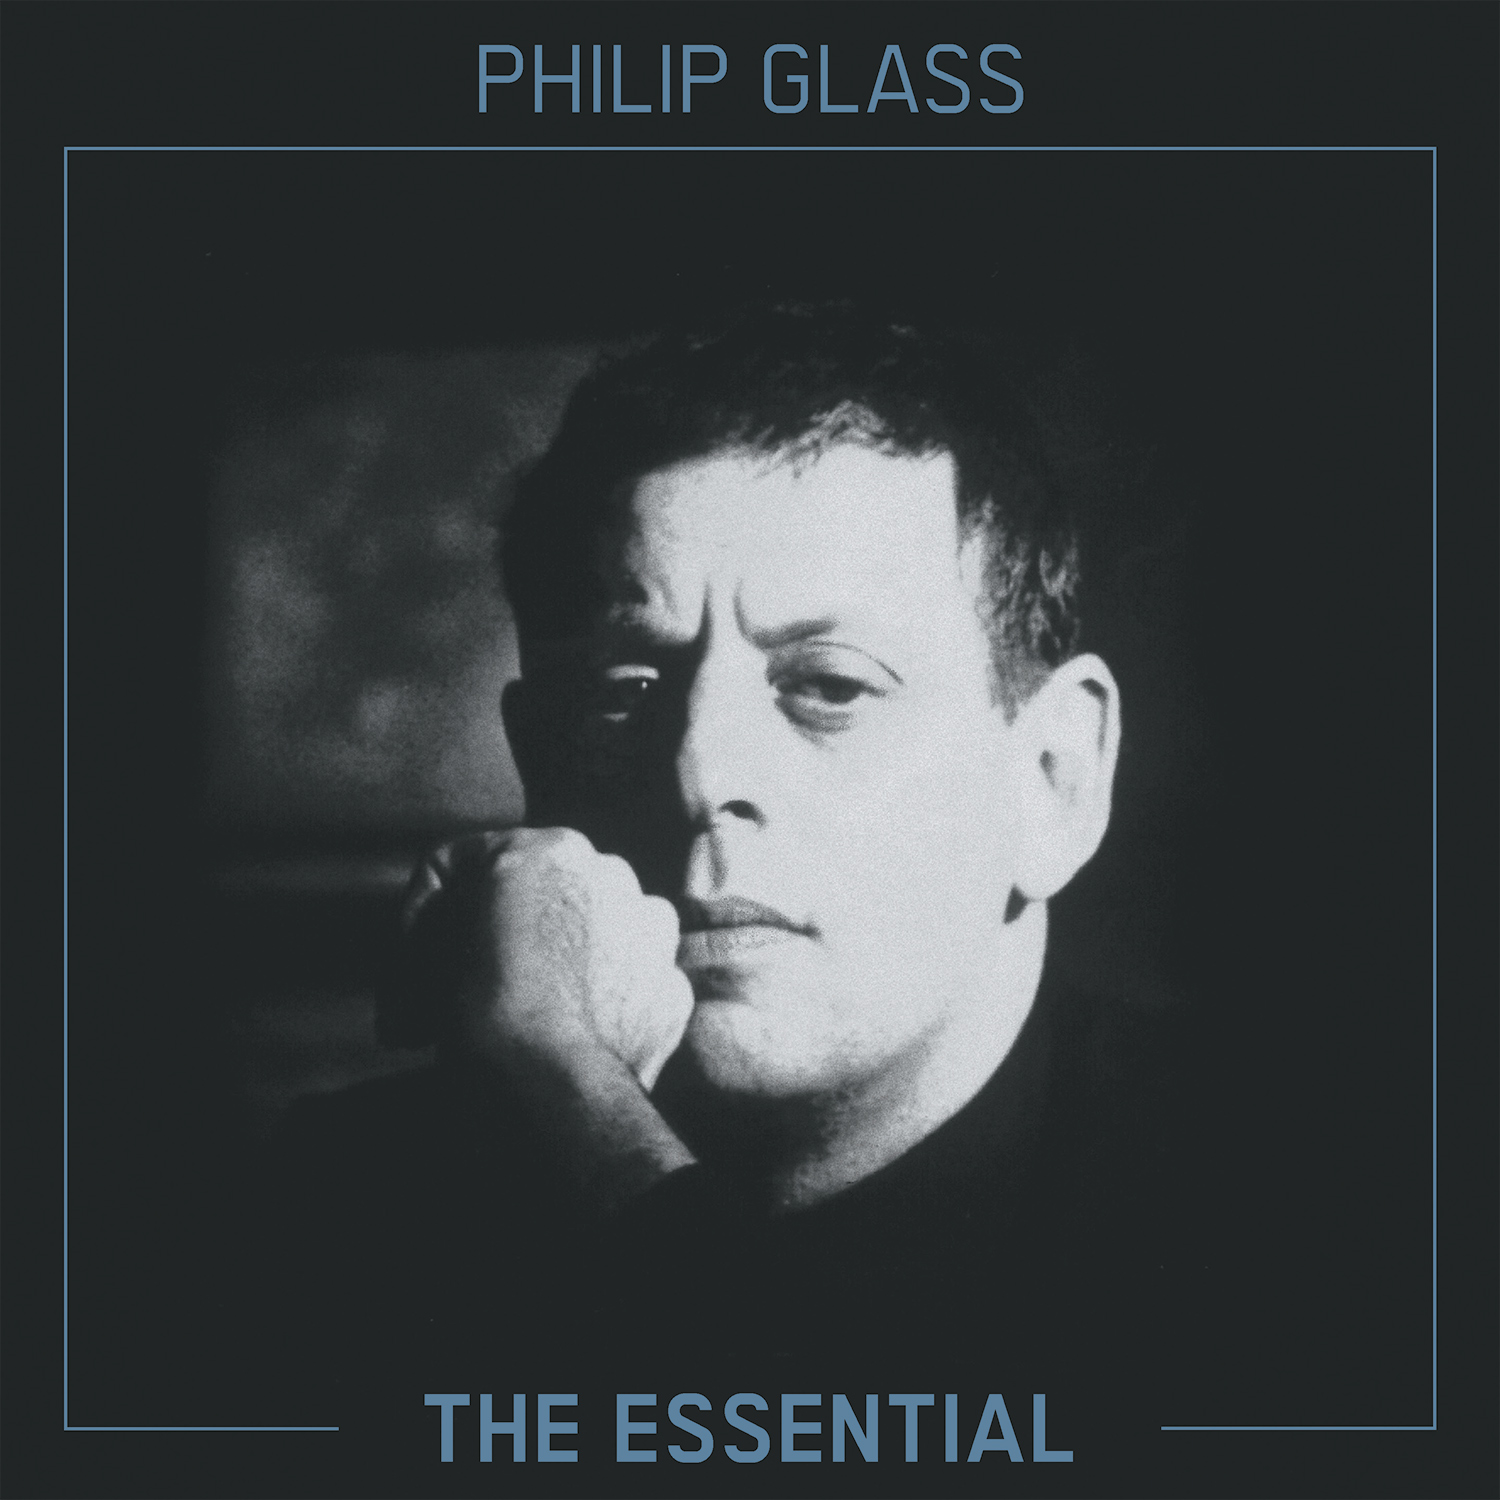 Philip Glass - The Essential [RSD Drops Aug 2020]